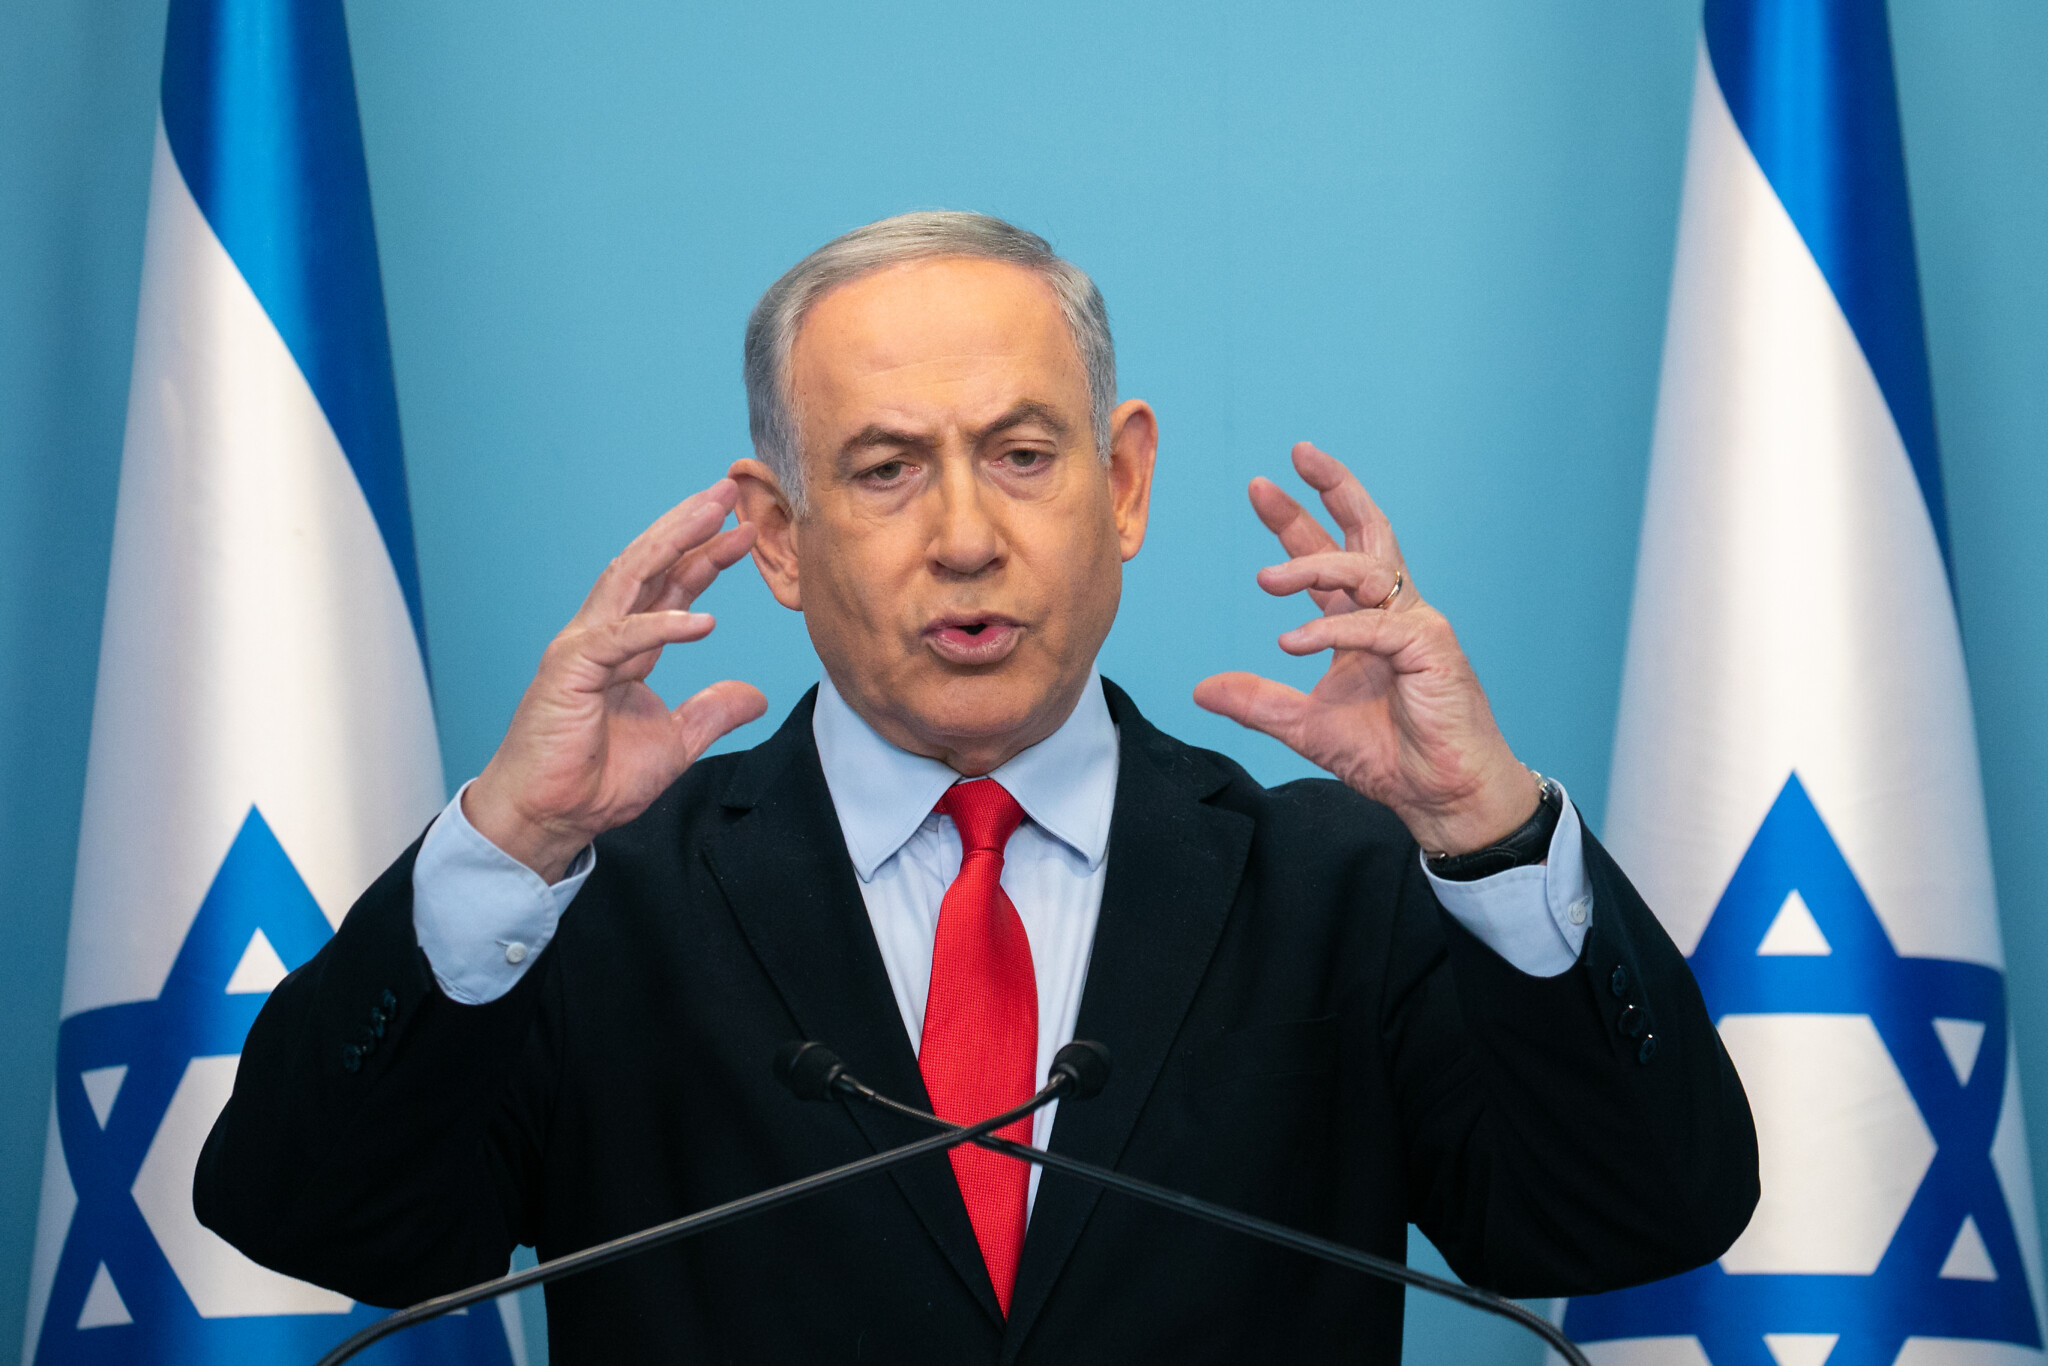 Israel election: Netanyahu's rival Benny Gantz will be asked to form government